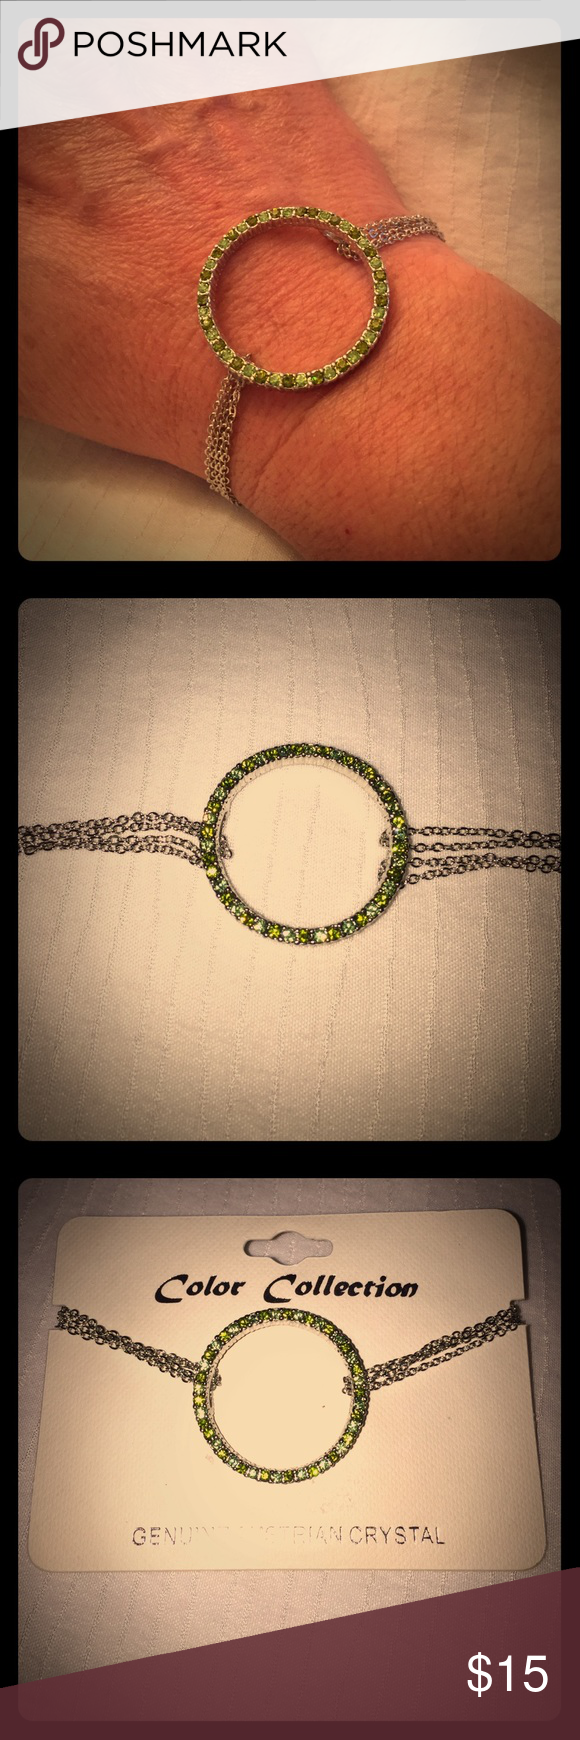 💚Genuine Australian Chrystal Bracelet💚 🌟This is a new gorgeous crystal circle trendy bracelet! It has a toggle clasp to make it easier to put on by yourself. I only took it out of the original Packaging to model and take pics. It will come packaged in a gorgeous jwerely bag! Price is firm but I offer a bundle discount of 15% on two or more items. Happy Poshing 🌺 Haiaccessories Jewelry Bracelets